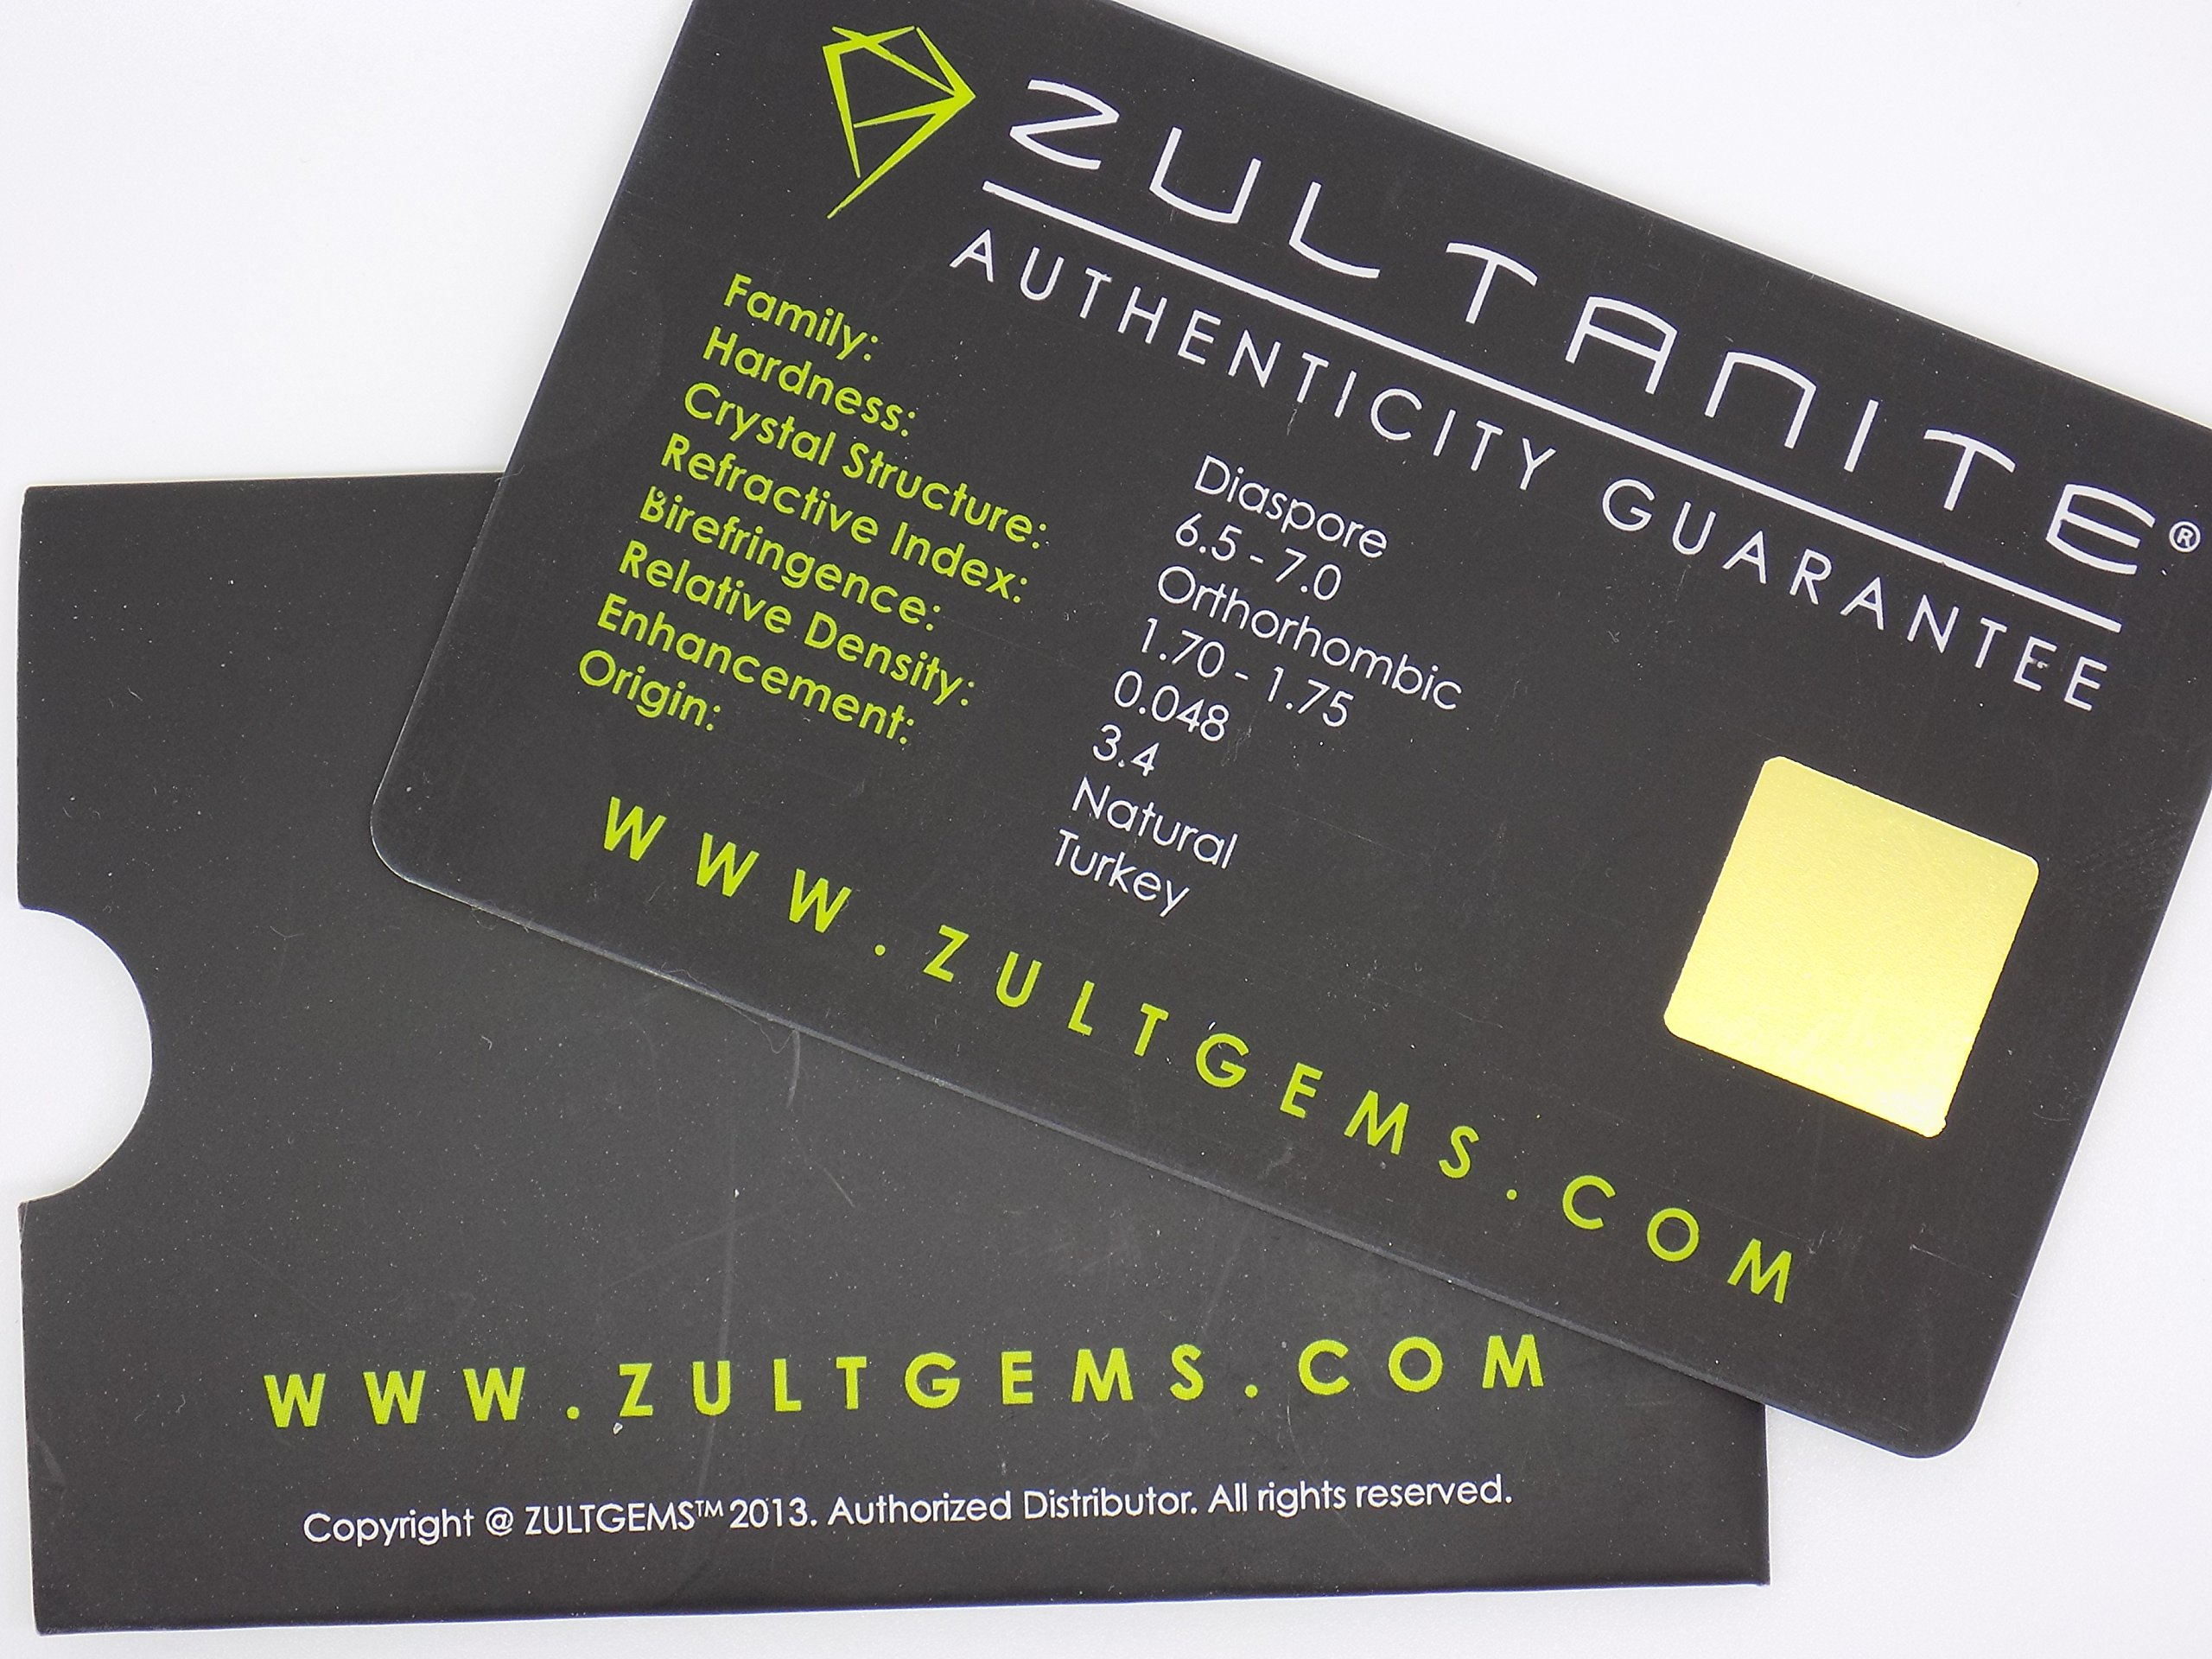 Zultanite (1) 1.37 Ct Natural Loose Gem 8x6mm Oval Cut Cert of Auth G011 by Zultanite (Image #5)